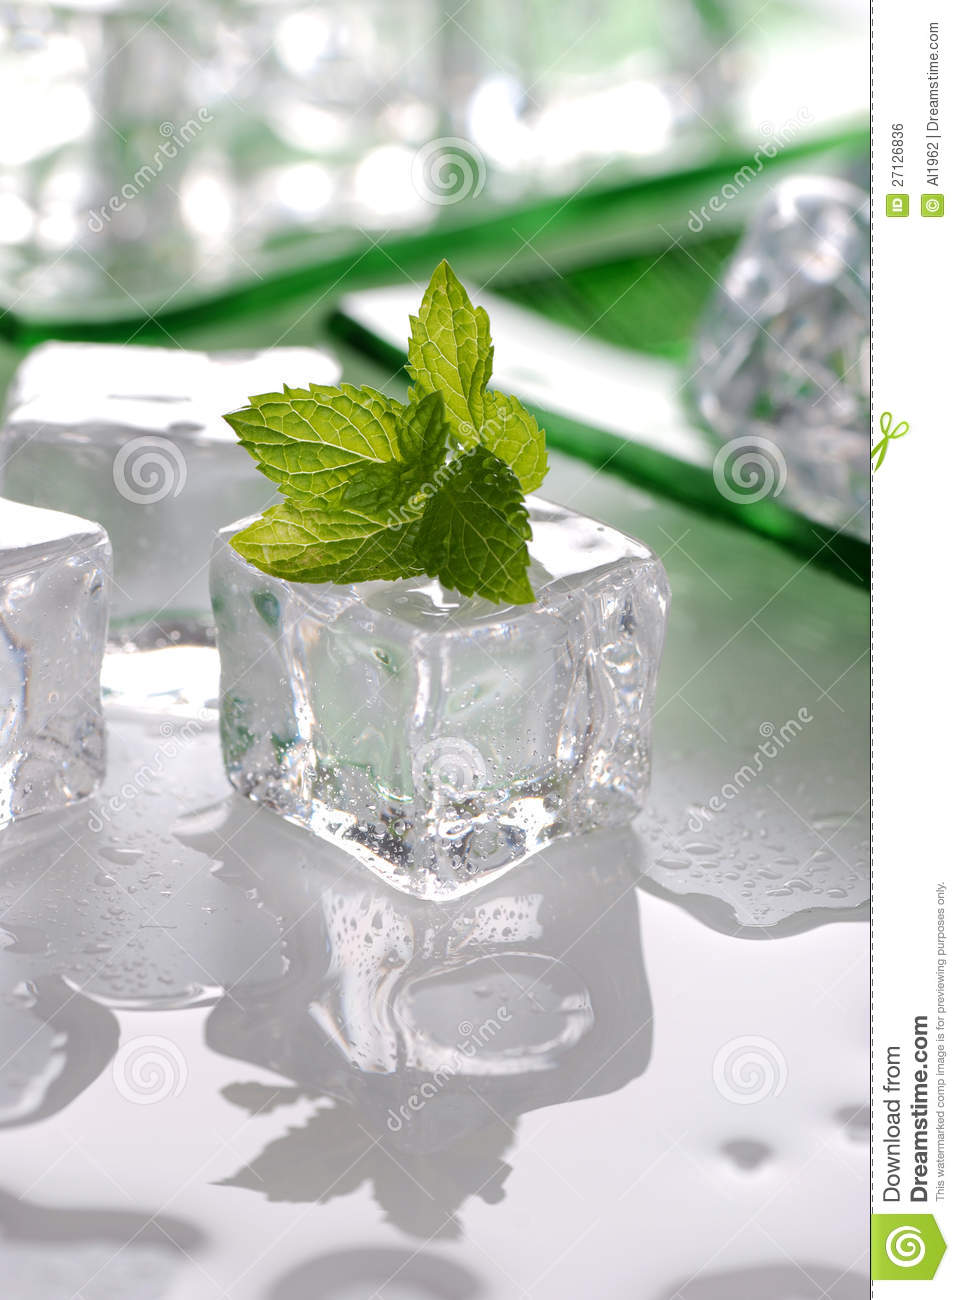 Ice And Mint Royalty Free Stock Image - Image: 27126836